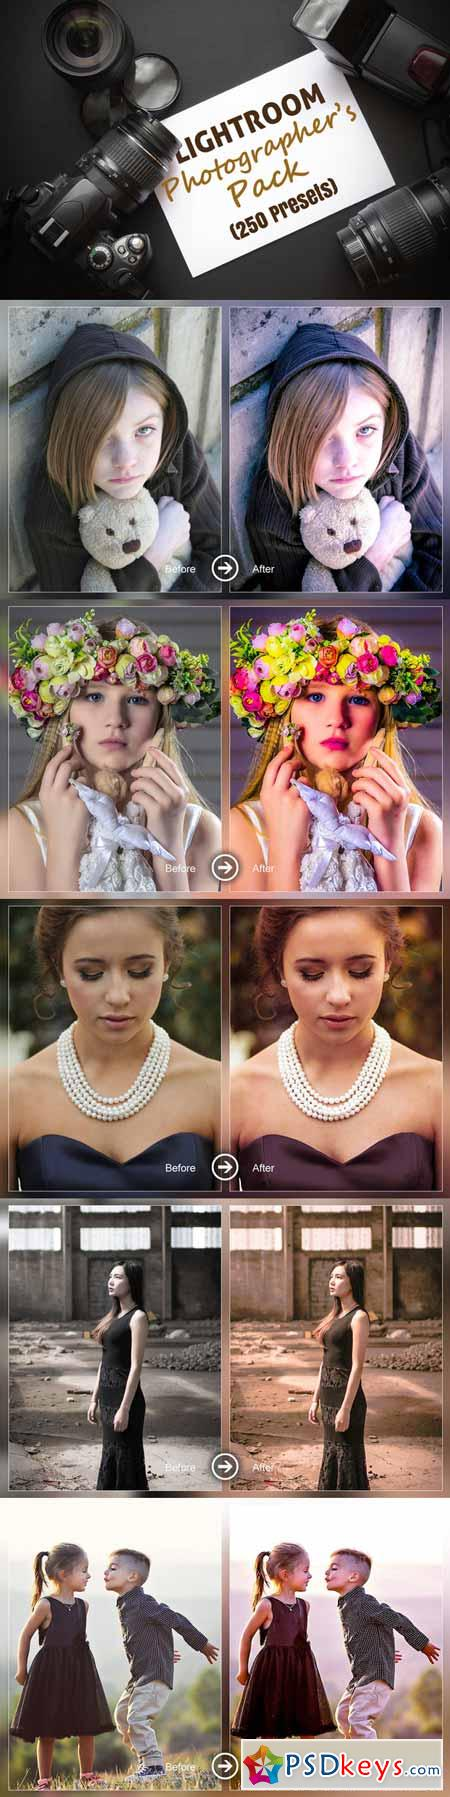 Photographer's Lightroom Preset Pack 371941